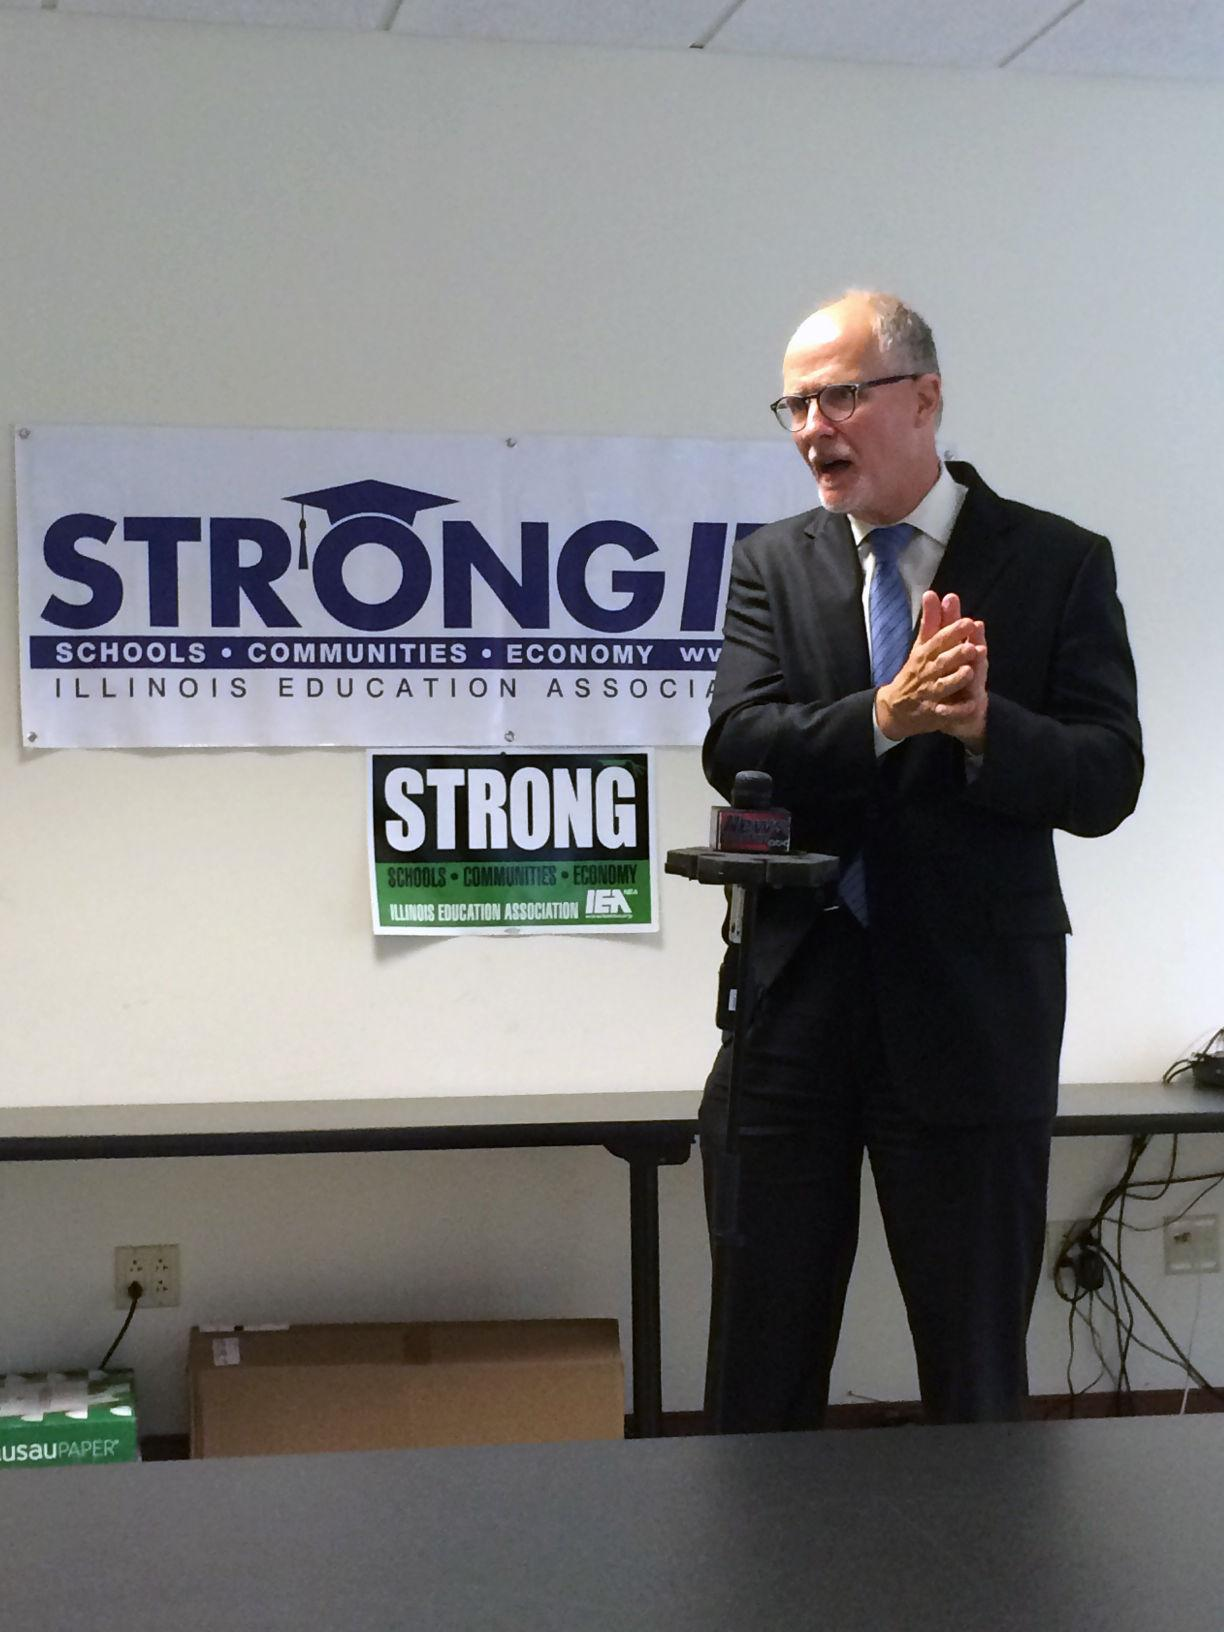 Lt. Gubernatorial candidate Paul Vallas held a press conference detailing the effects of Rauner's budget cuts. Vallas highlighted cuts that would be made to Champaign area schools.